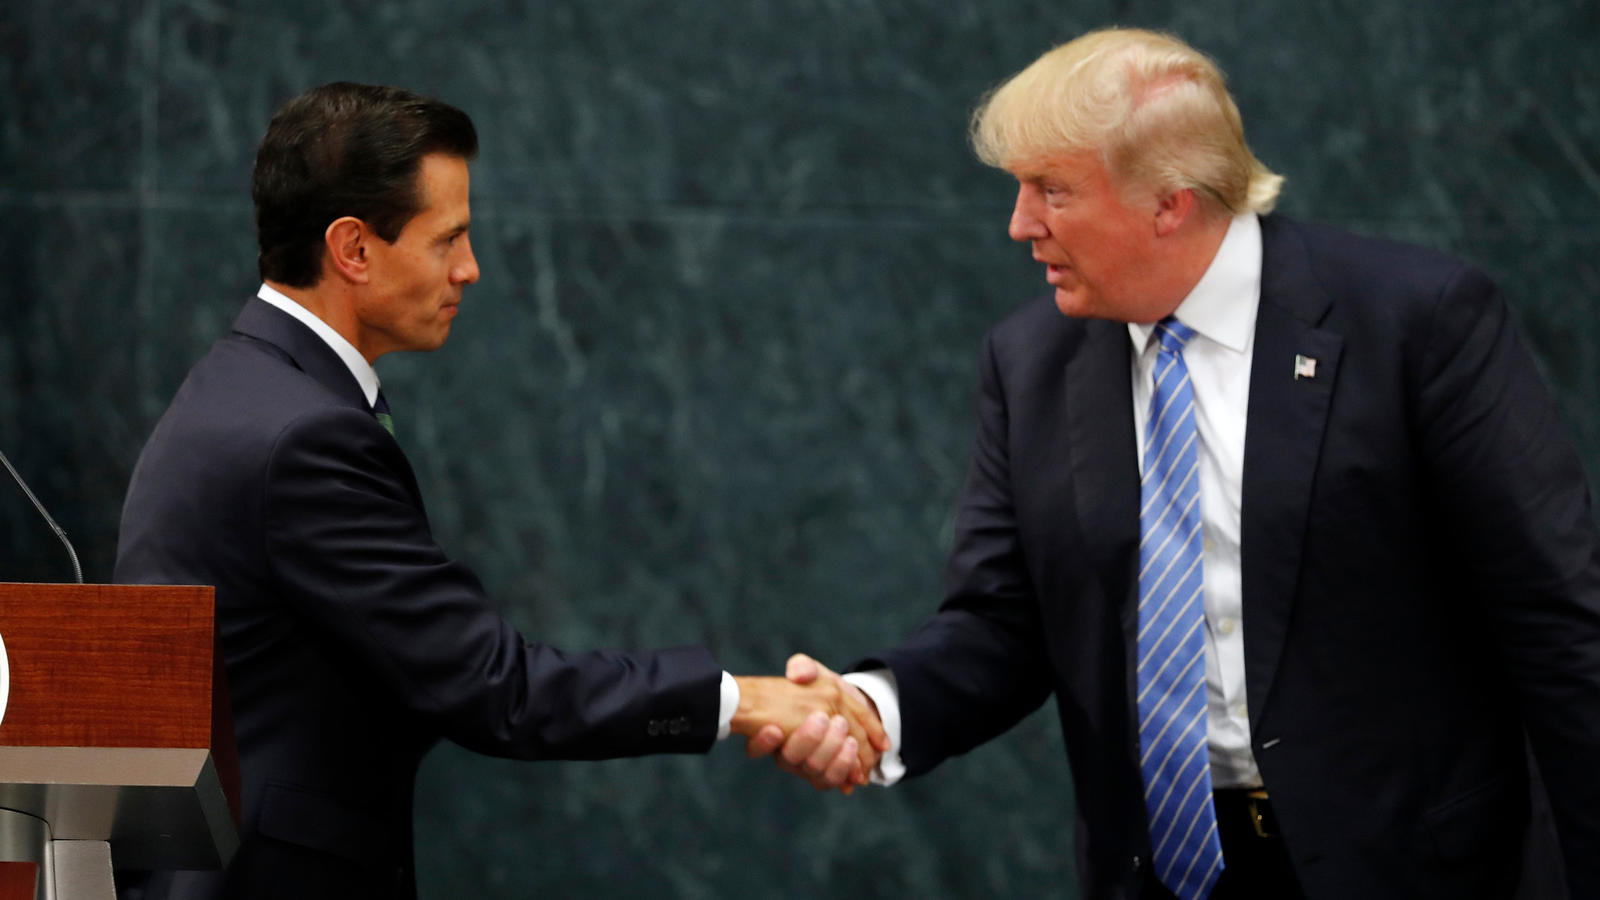 Then-candidate Donald Trump meets with Mexican President Enrique Peña Nieto in August 2016 in Mexico City. (Dario Lopez-Mills / Associated Press)